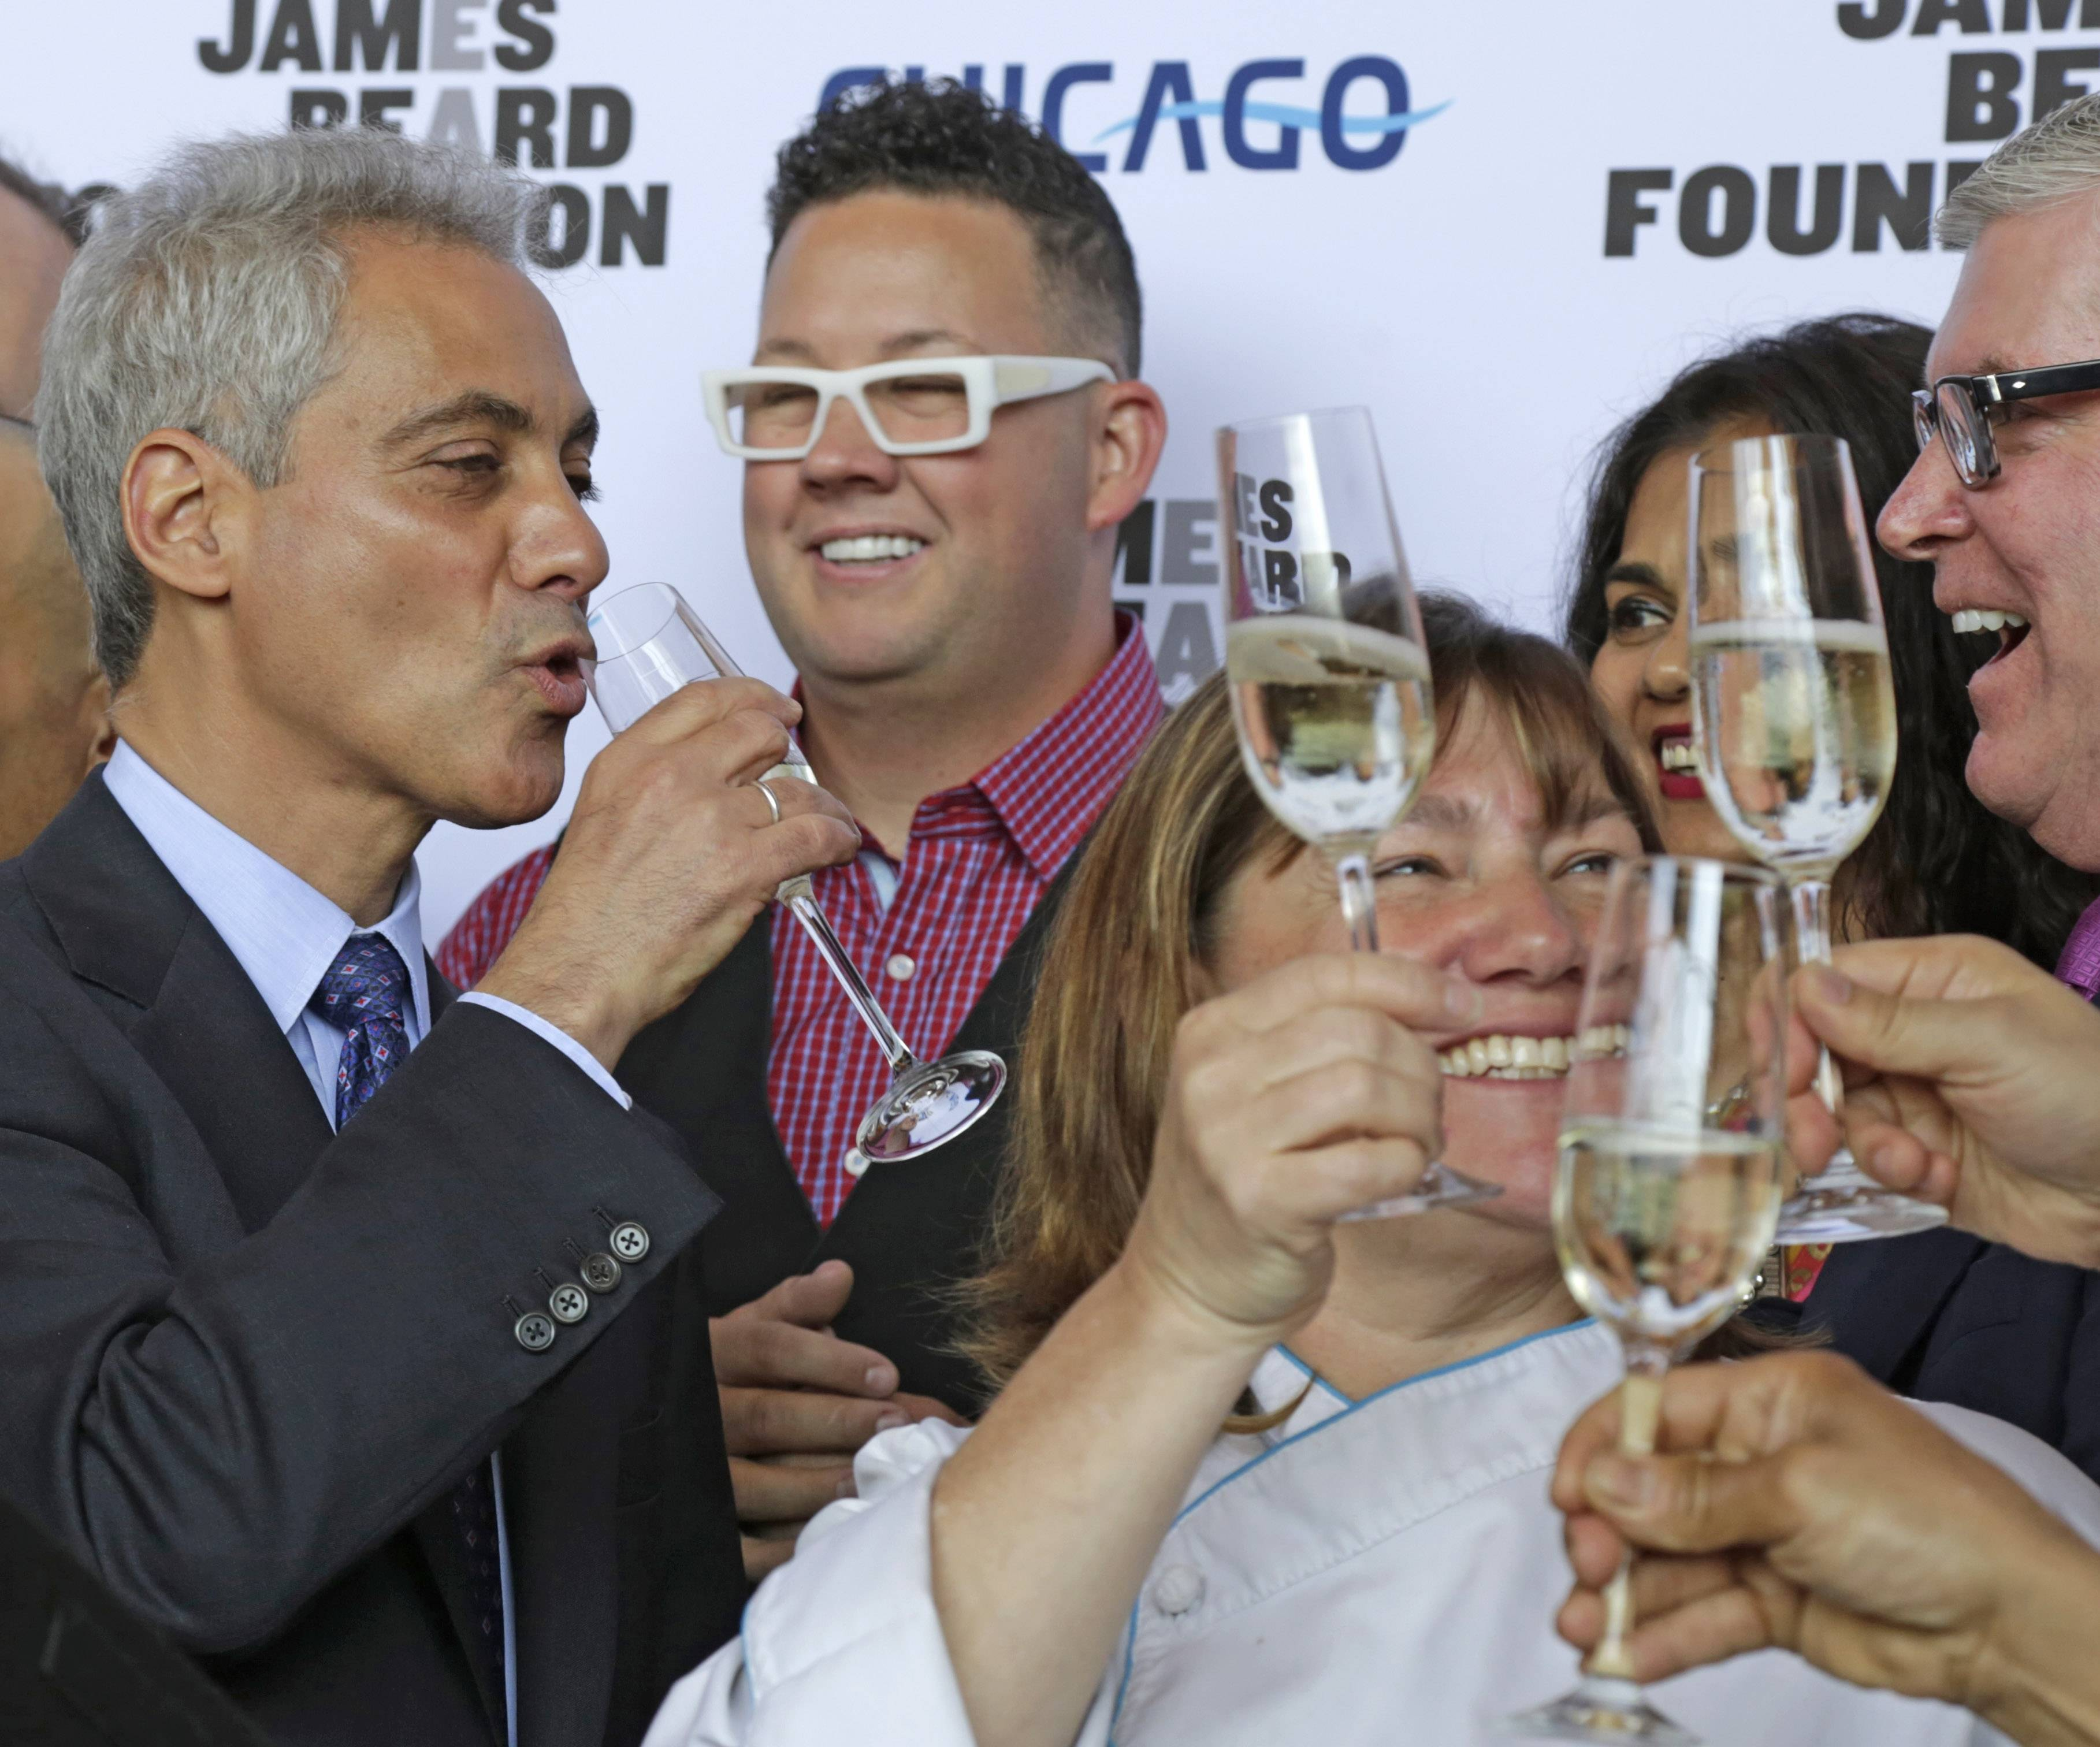 For 25th anniversary, Beard awards move to Chicago